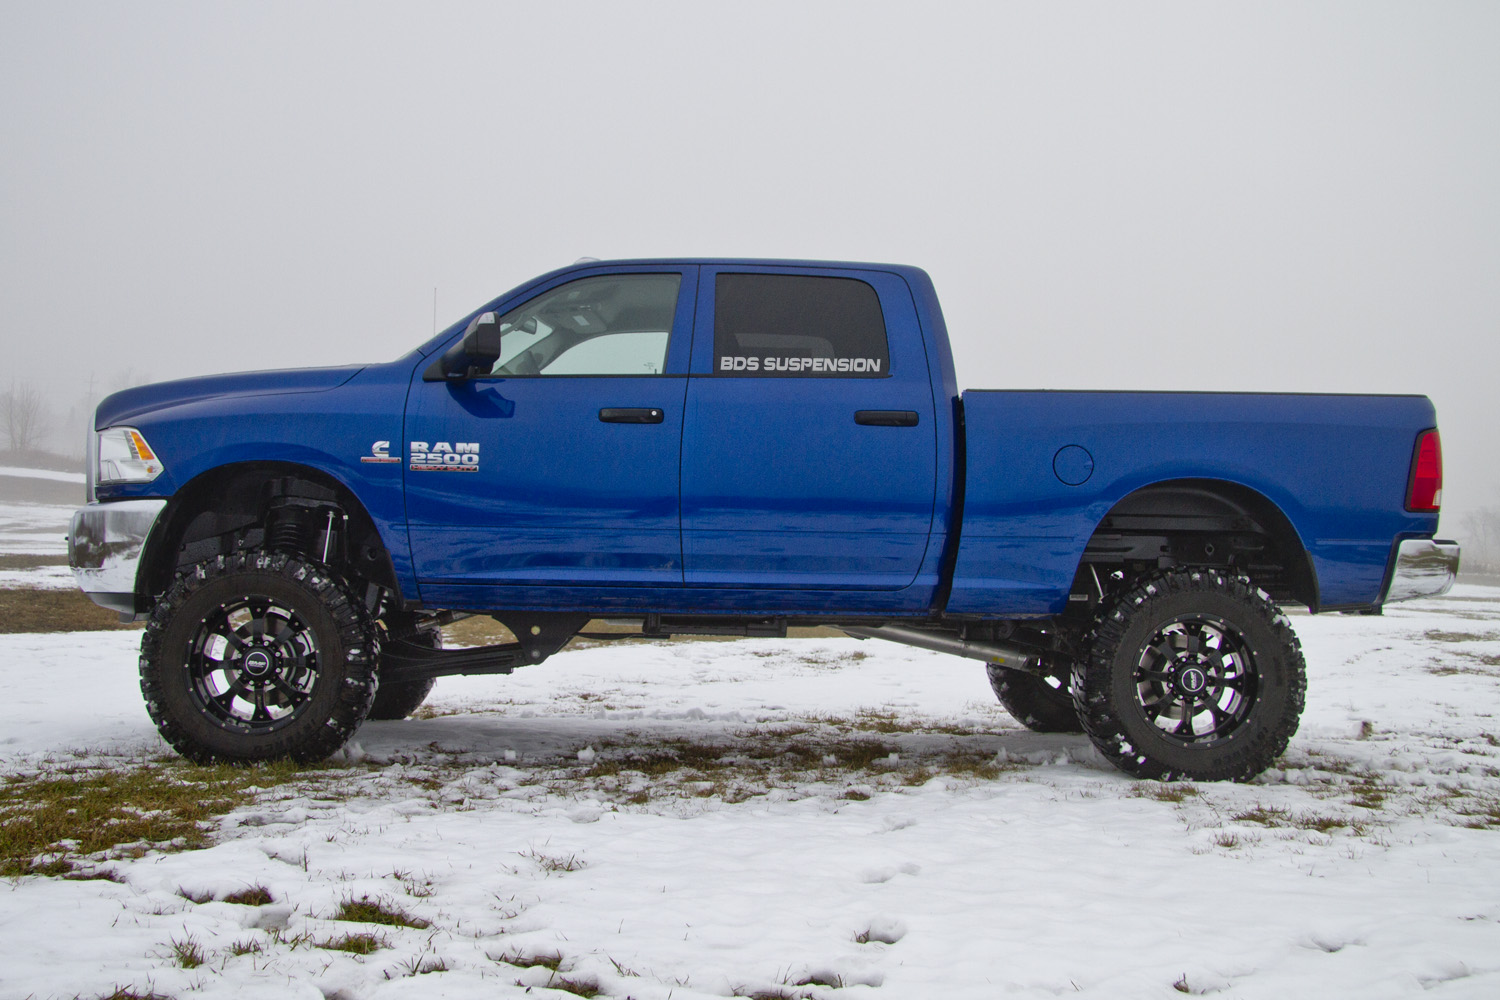 hires image dodge_2500_14b_6in_ajpg - Dodge Ram 2014 Lifted